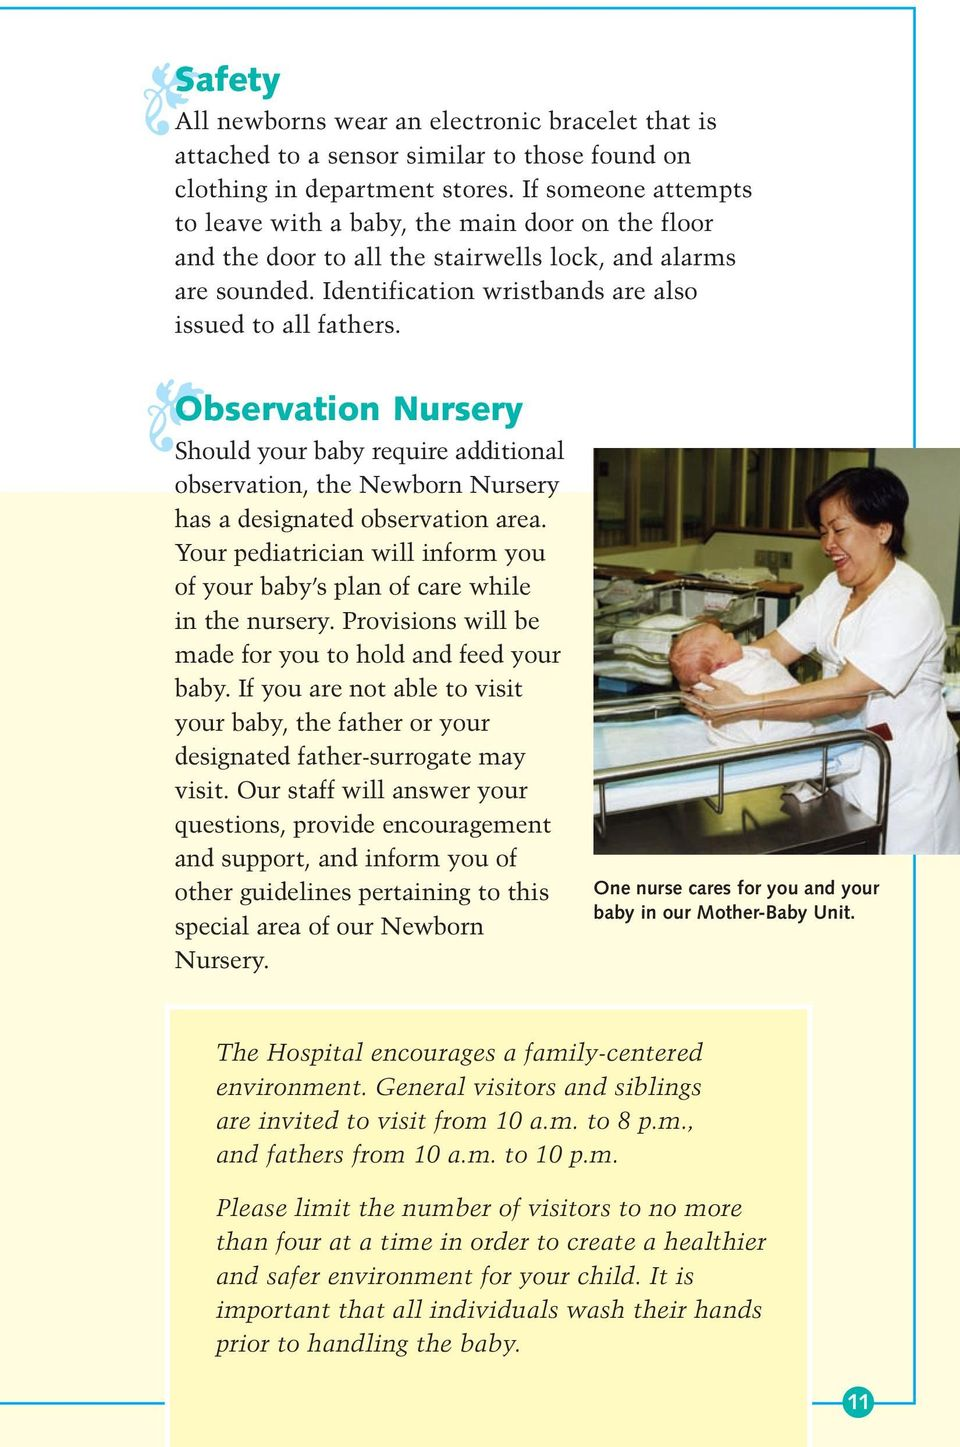 Observation Nursery Should your baby require additional observation, the Newborn Nursery has a designated observation area.